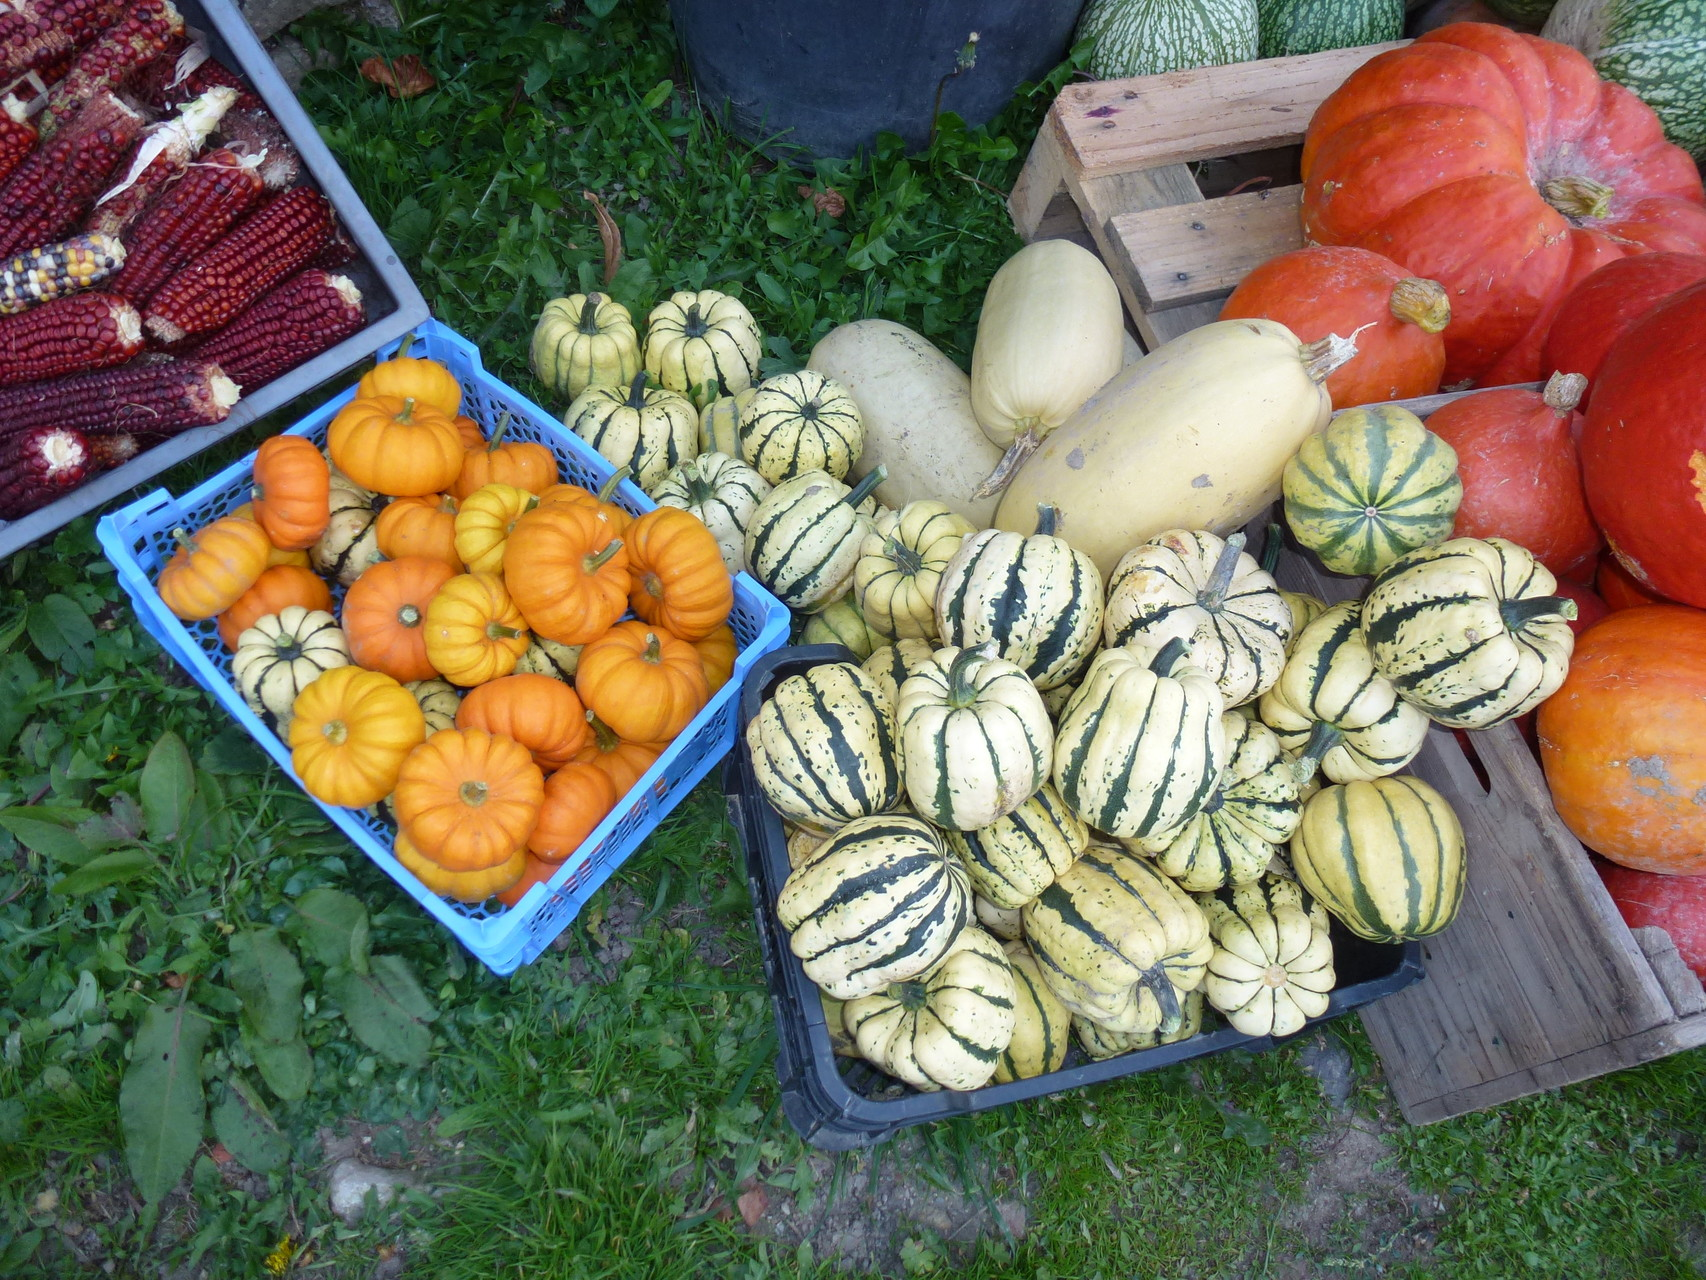 Collection de courge : patidou, jack be little, butternut, potimarron